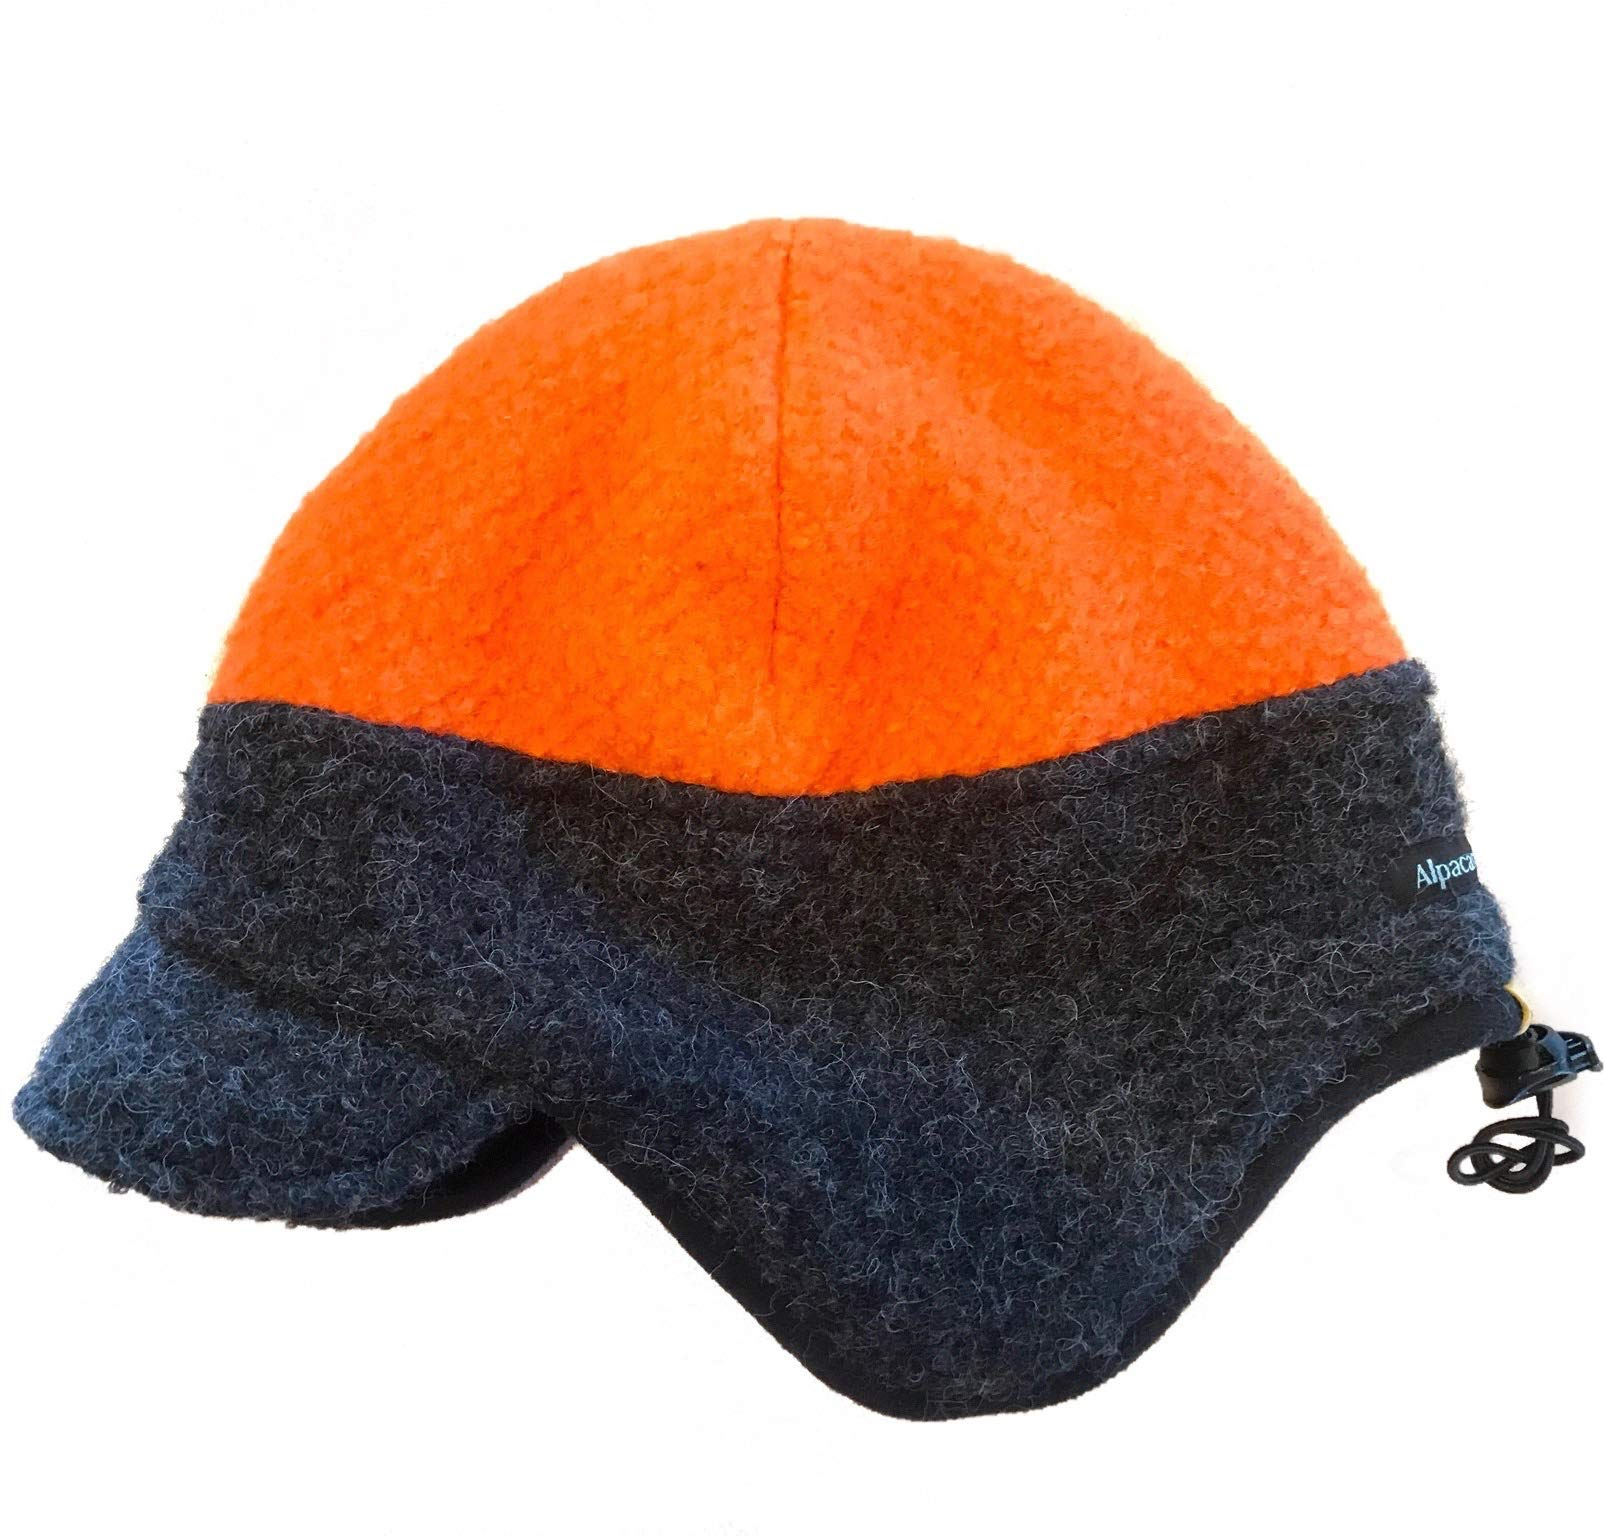 Alpacas of Montana Extreme Warmth Adjustable Windstopper Sportsman's Hunting Hat - 3 Size and Color Options Uni-Sex (Orange/Gray, Small) by Alpacas of Montana